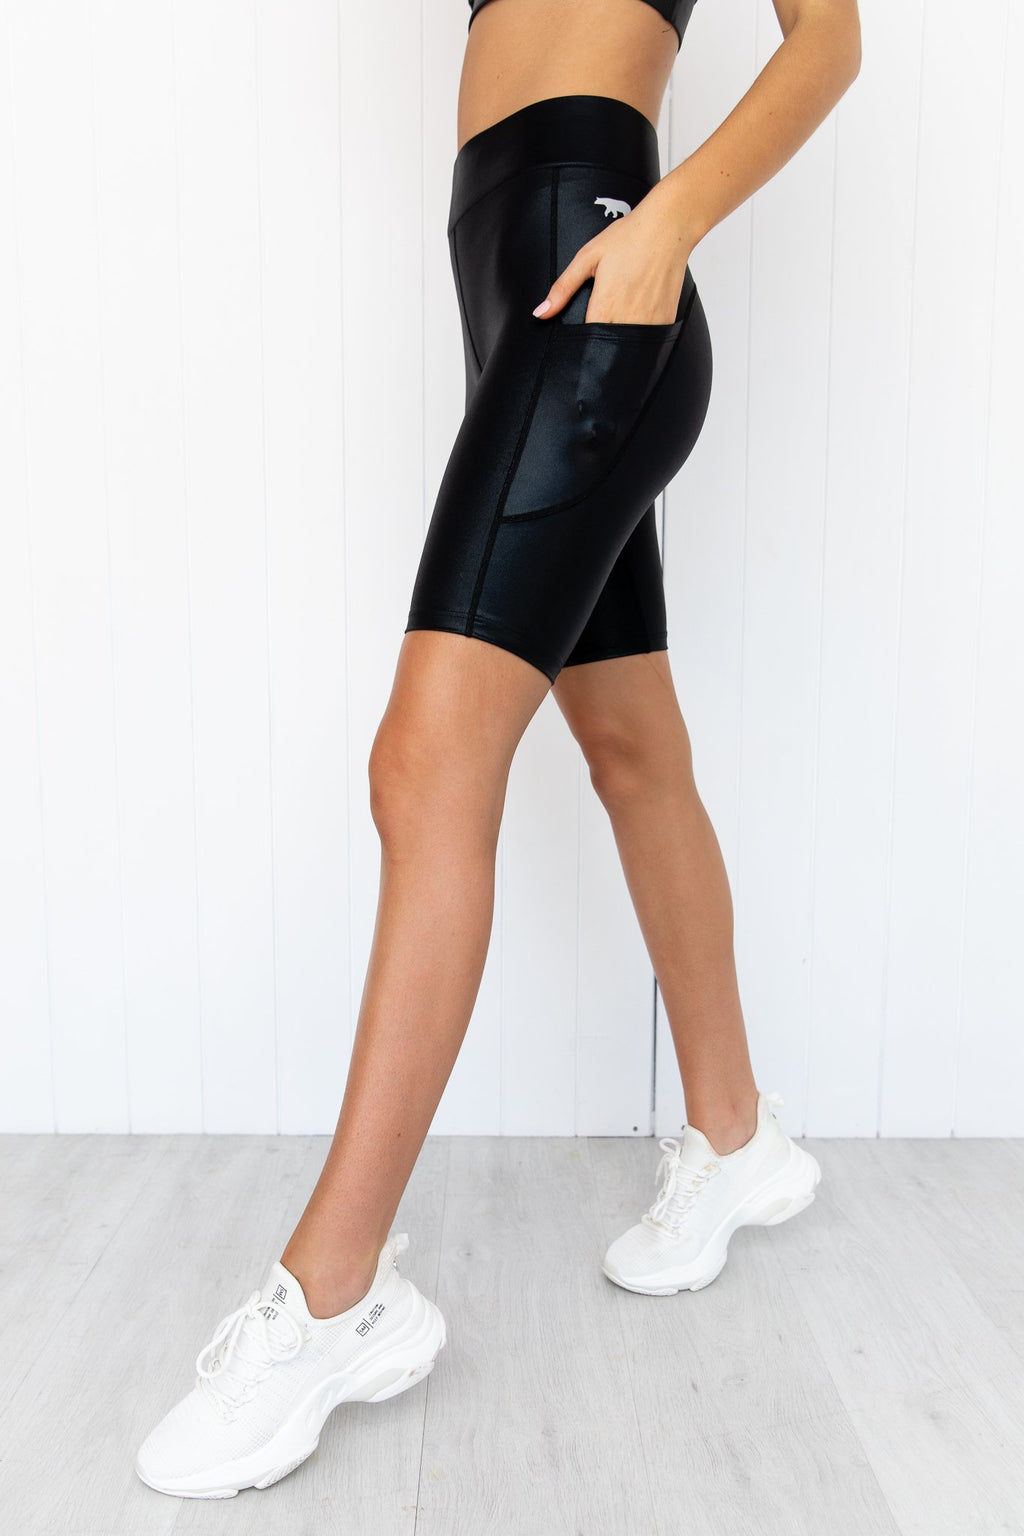 Zodiac Flex Zone Bike Tights